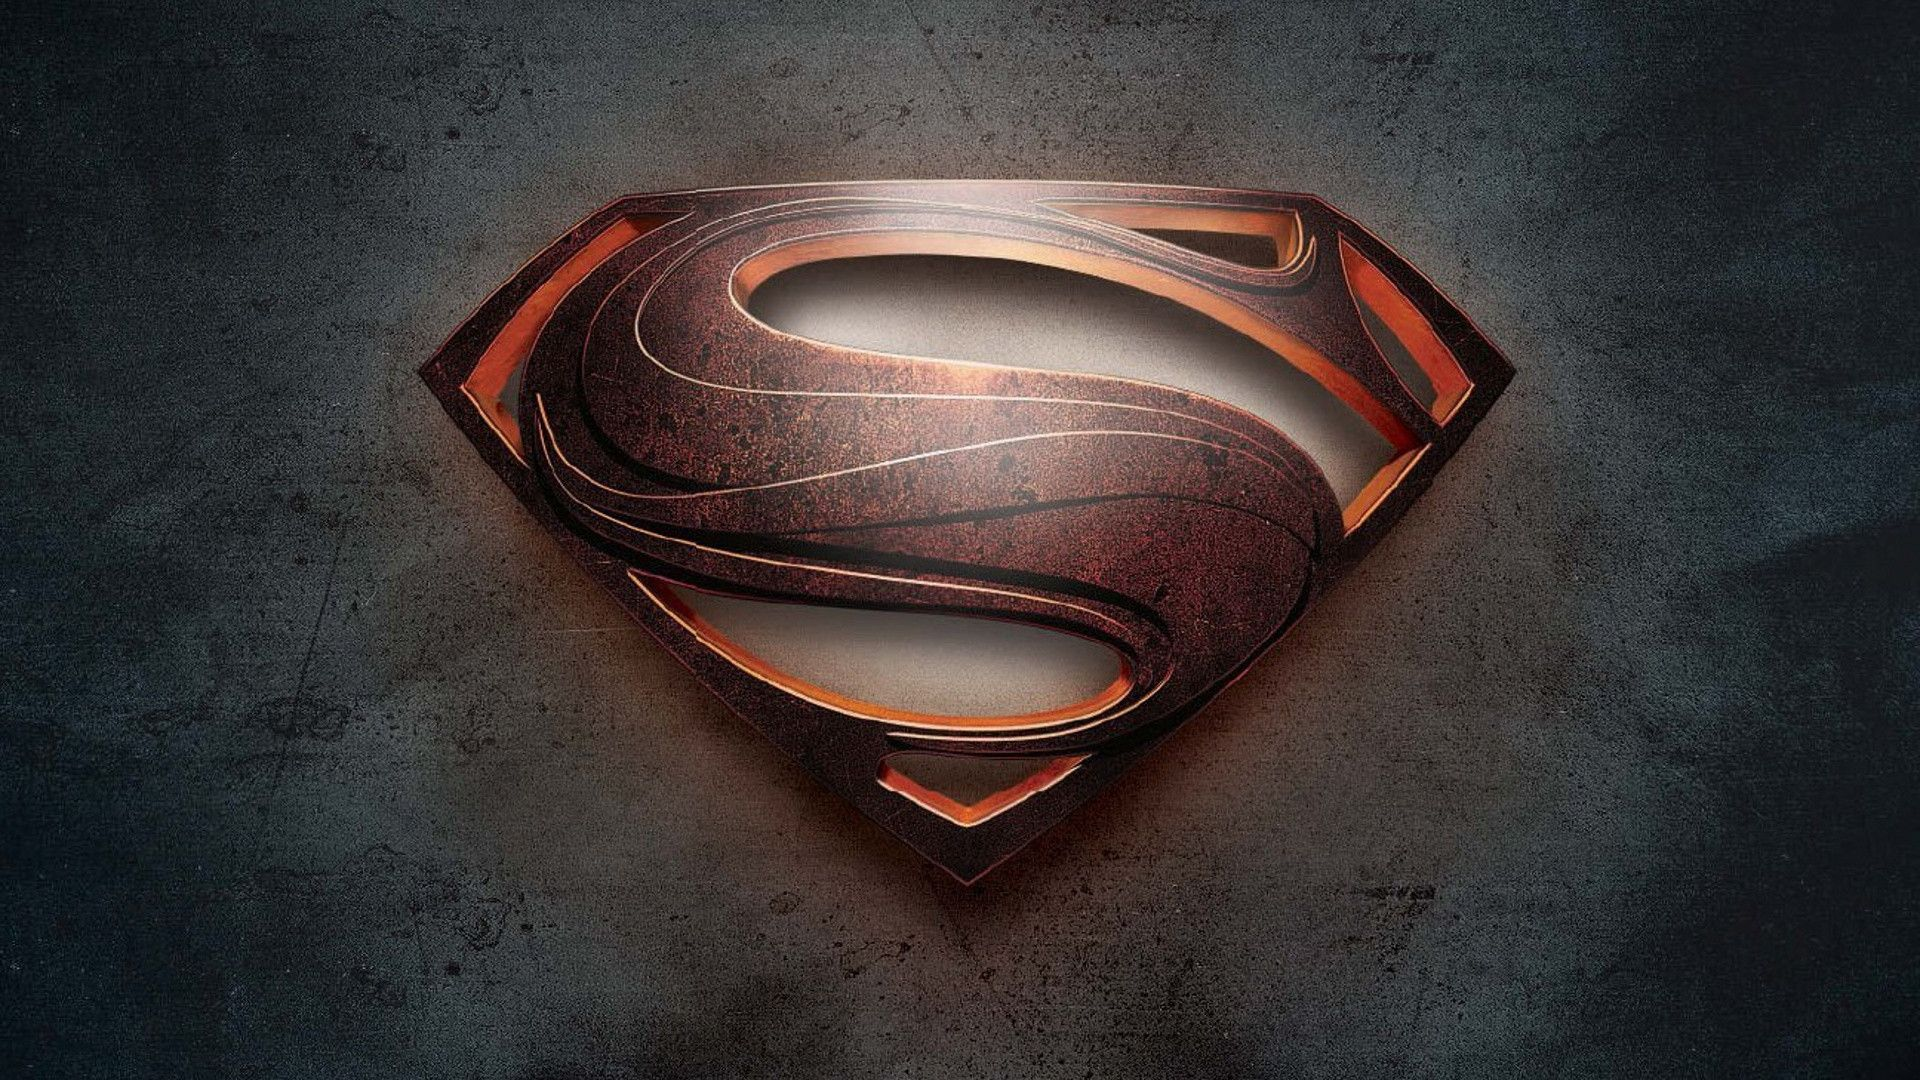 best-images-about-Superman-on-Pinterest-Iphone-wallpaper-wpc5802790